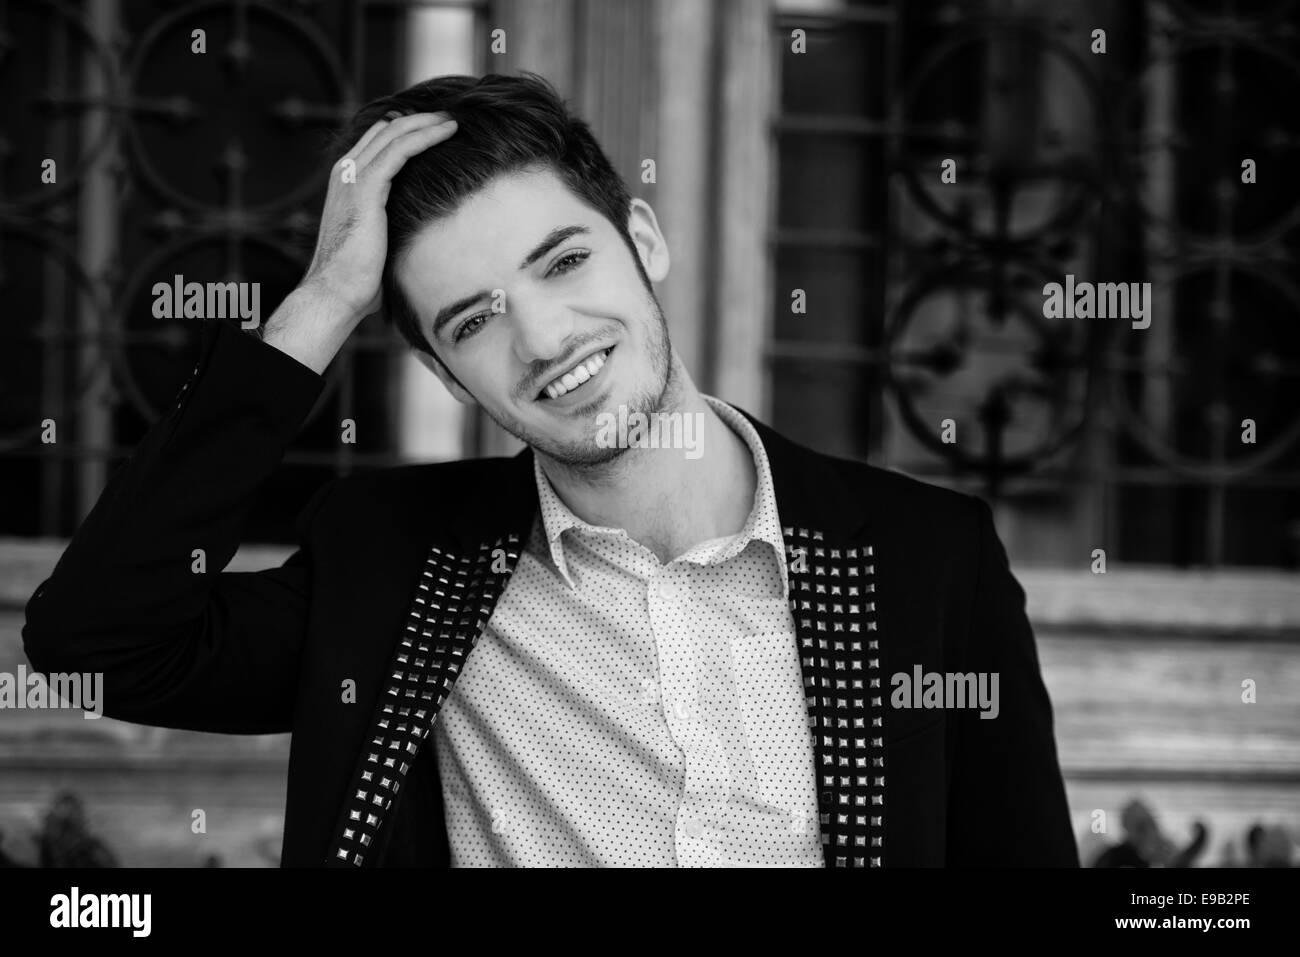 Black and white portrait of an attractive young man smiling - Stock Image